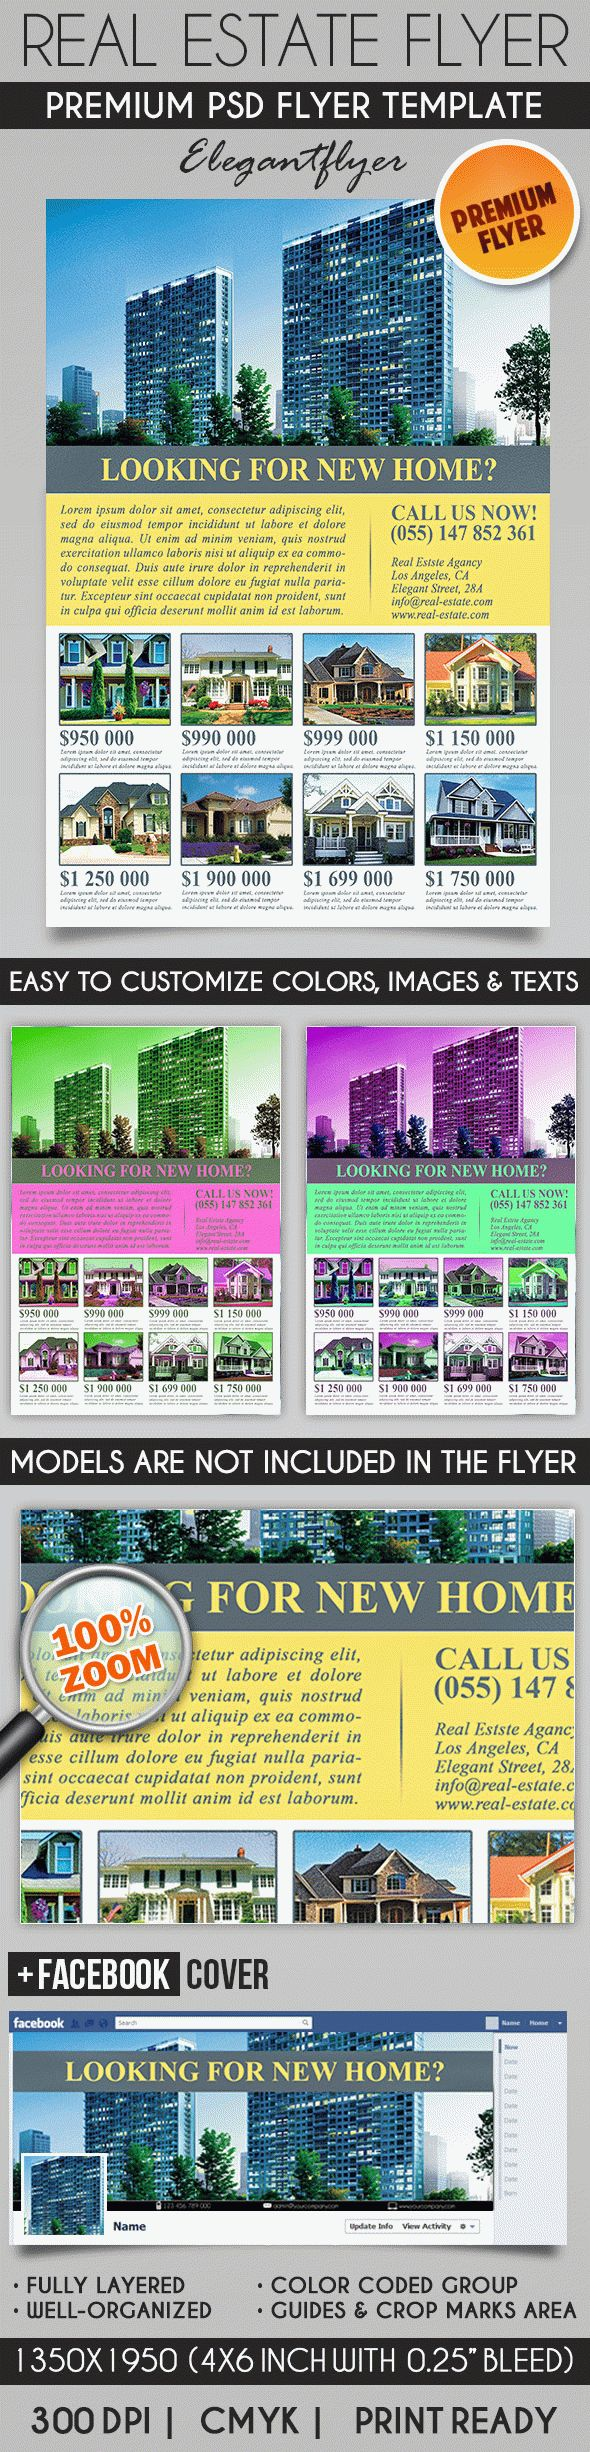 Flyer Template For Real Estate